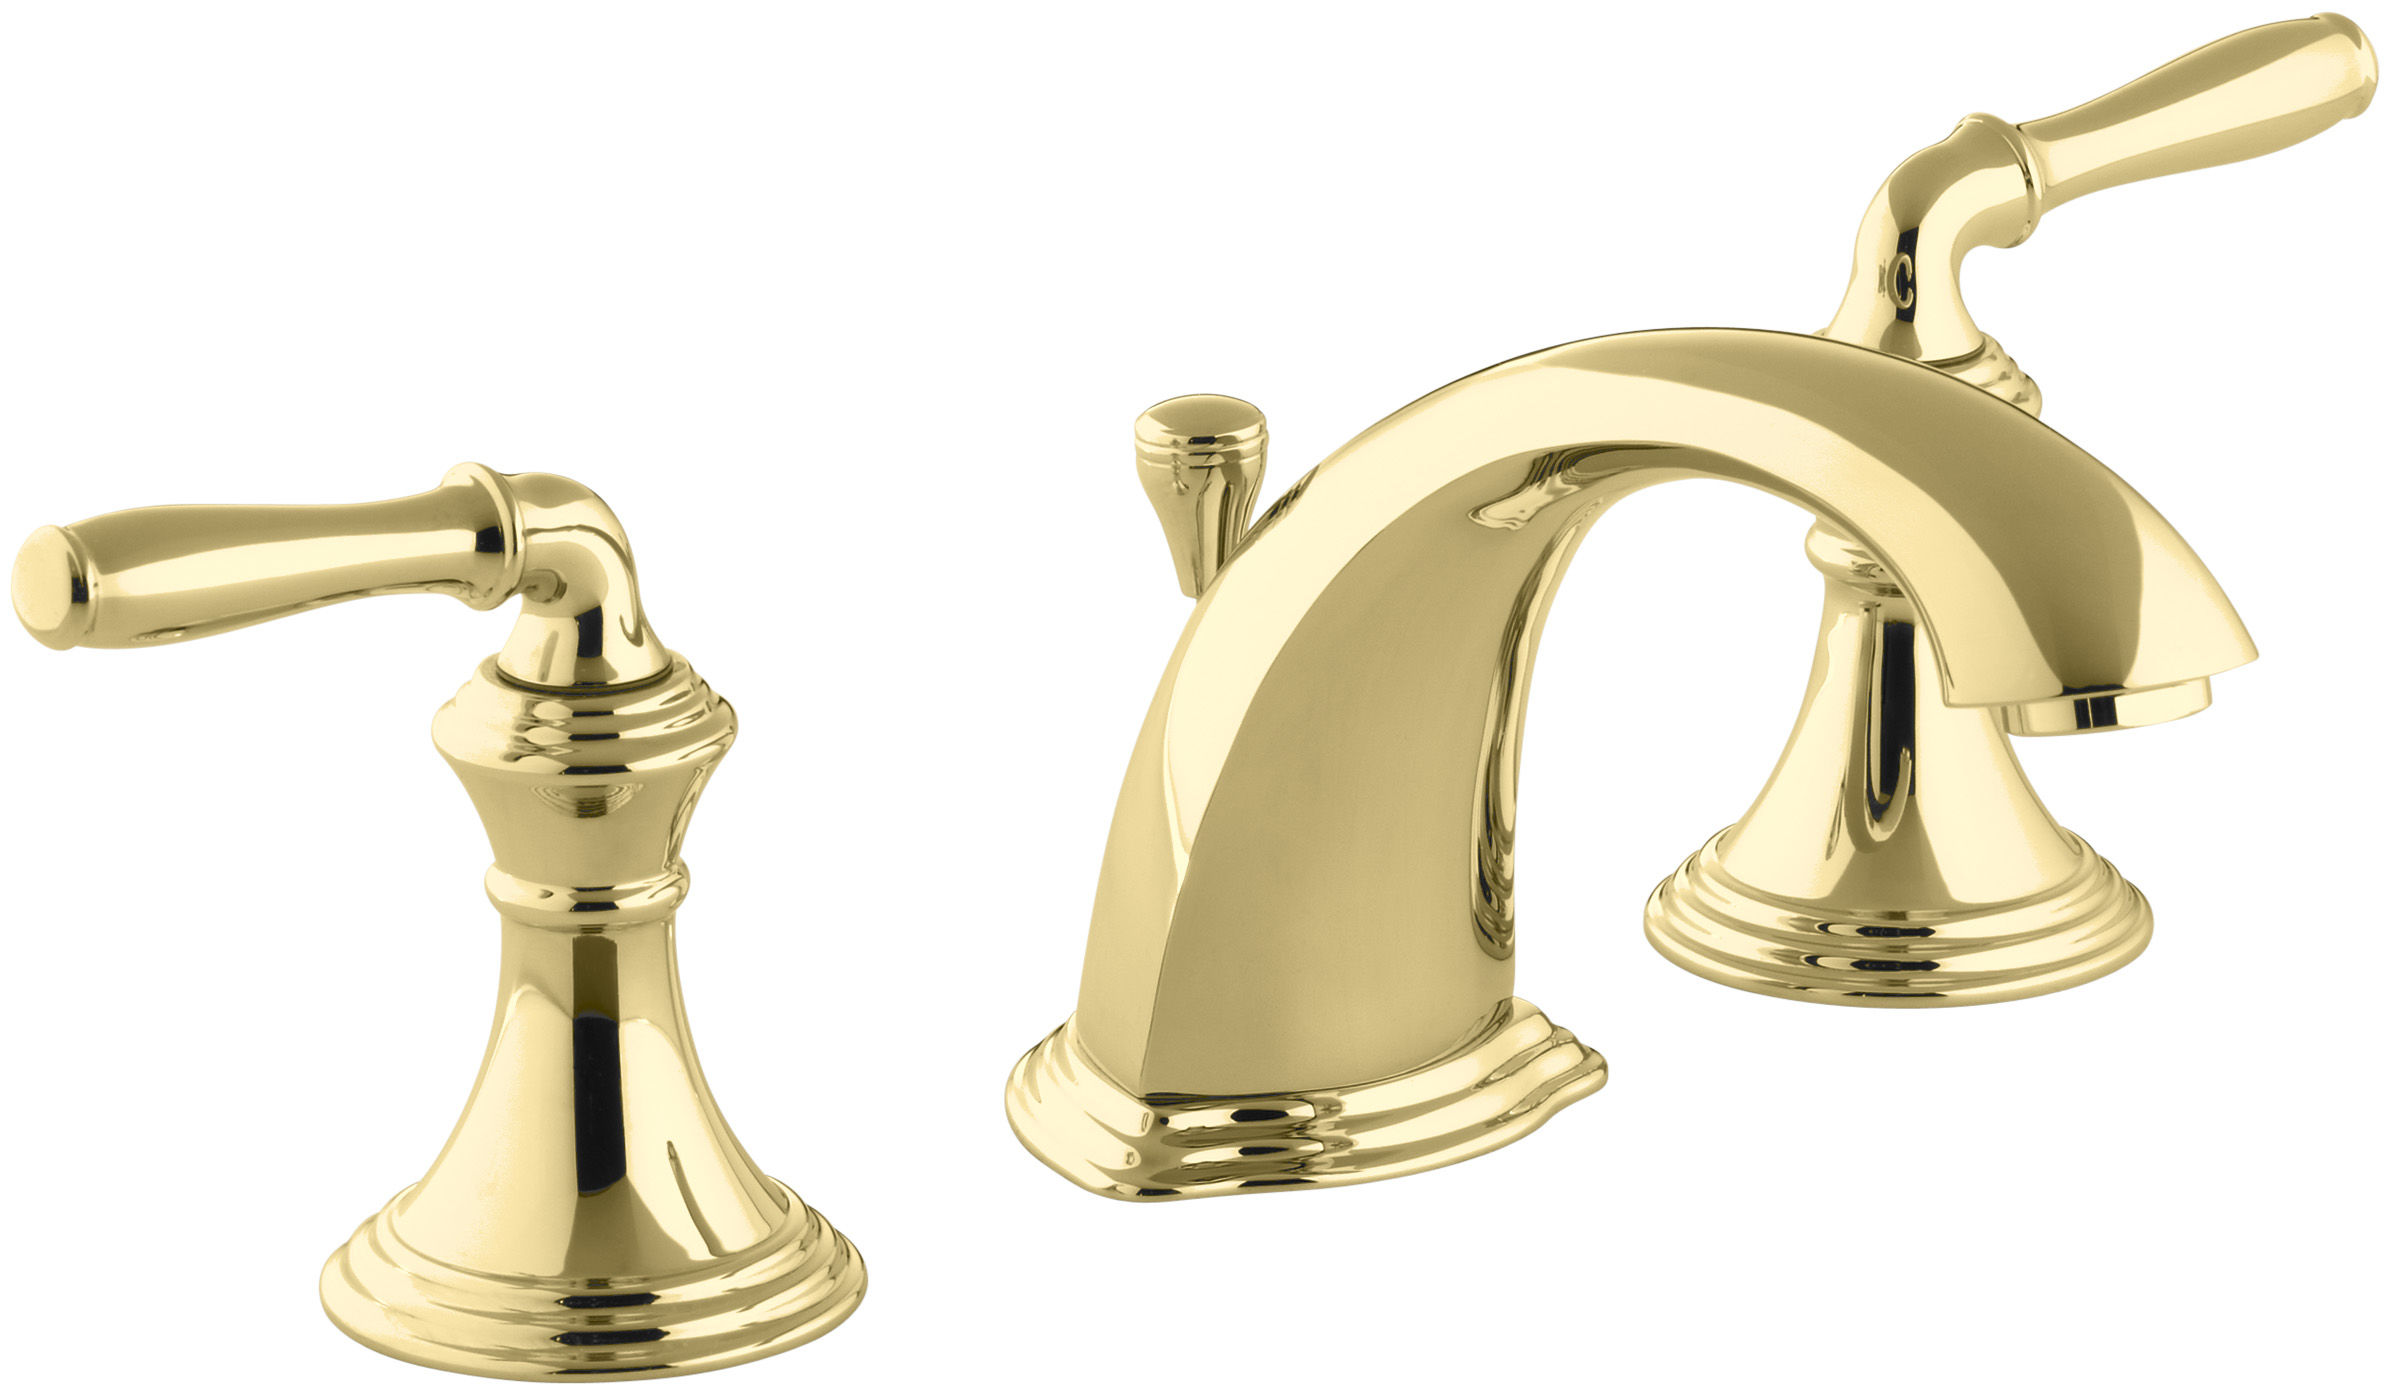 Kohler K-394-4-CB Polished Chrome/Polished Brass Devonshire ...